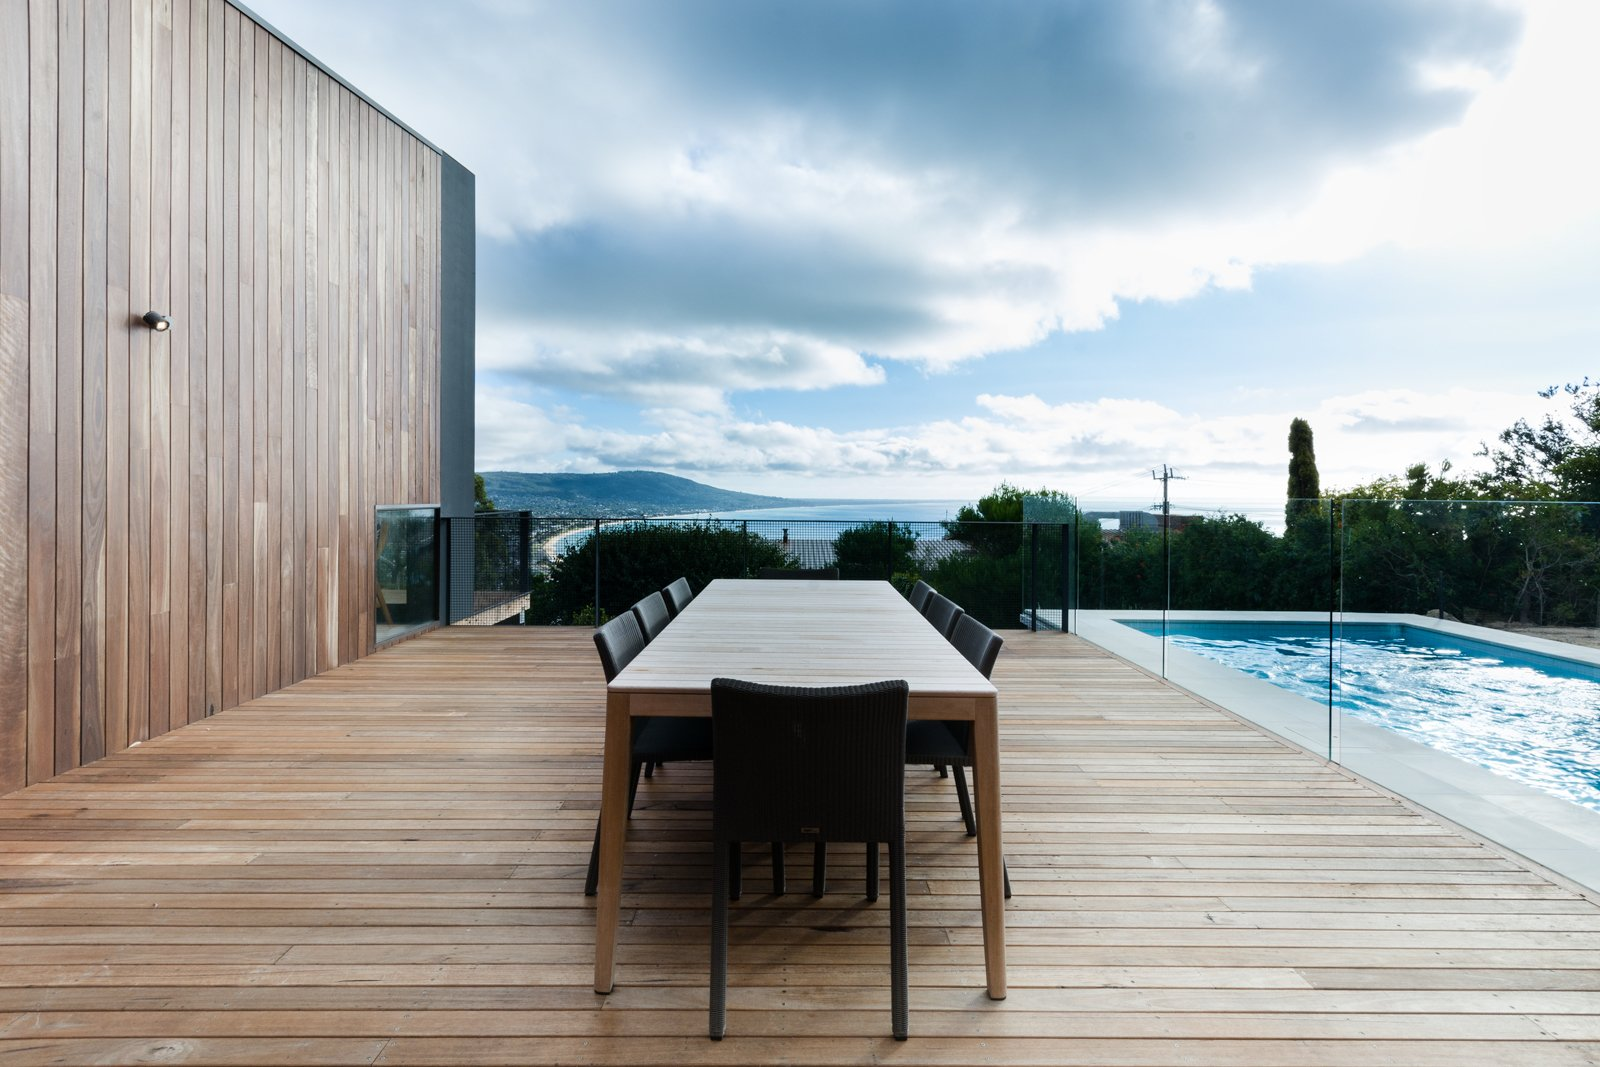 Outdoor, Large Pools, Tubs, Shower, Swimming Pools, Tubs, Shower, Large Patio, Porch, Deck, Wood Patio, Porch, Deck, Trees, Back Yard, and Metal Fences, Wall A Mood Outdoor Table by Studio Segers for Tribù is surrounded by Terra Outdoor Chairs by Bram Bollen, also for Tribù. They rest atop silvertop ash hardwood decking.  Best Photos from Martha